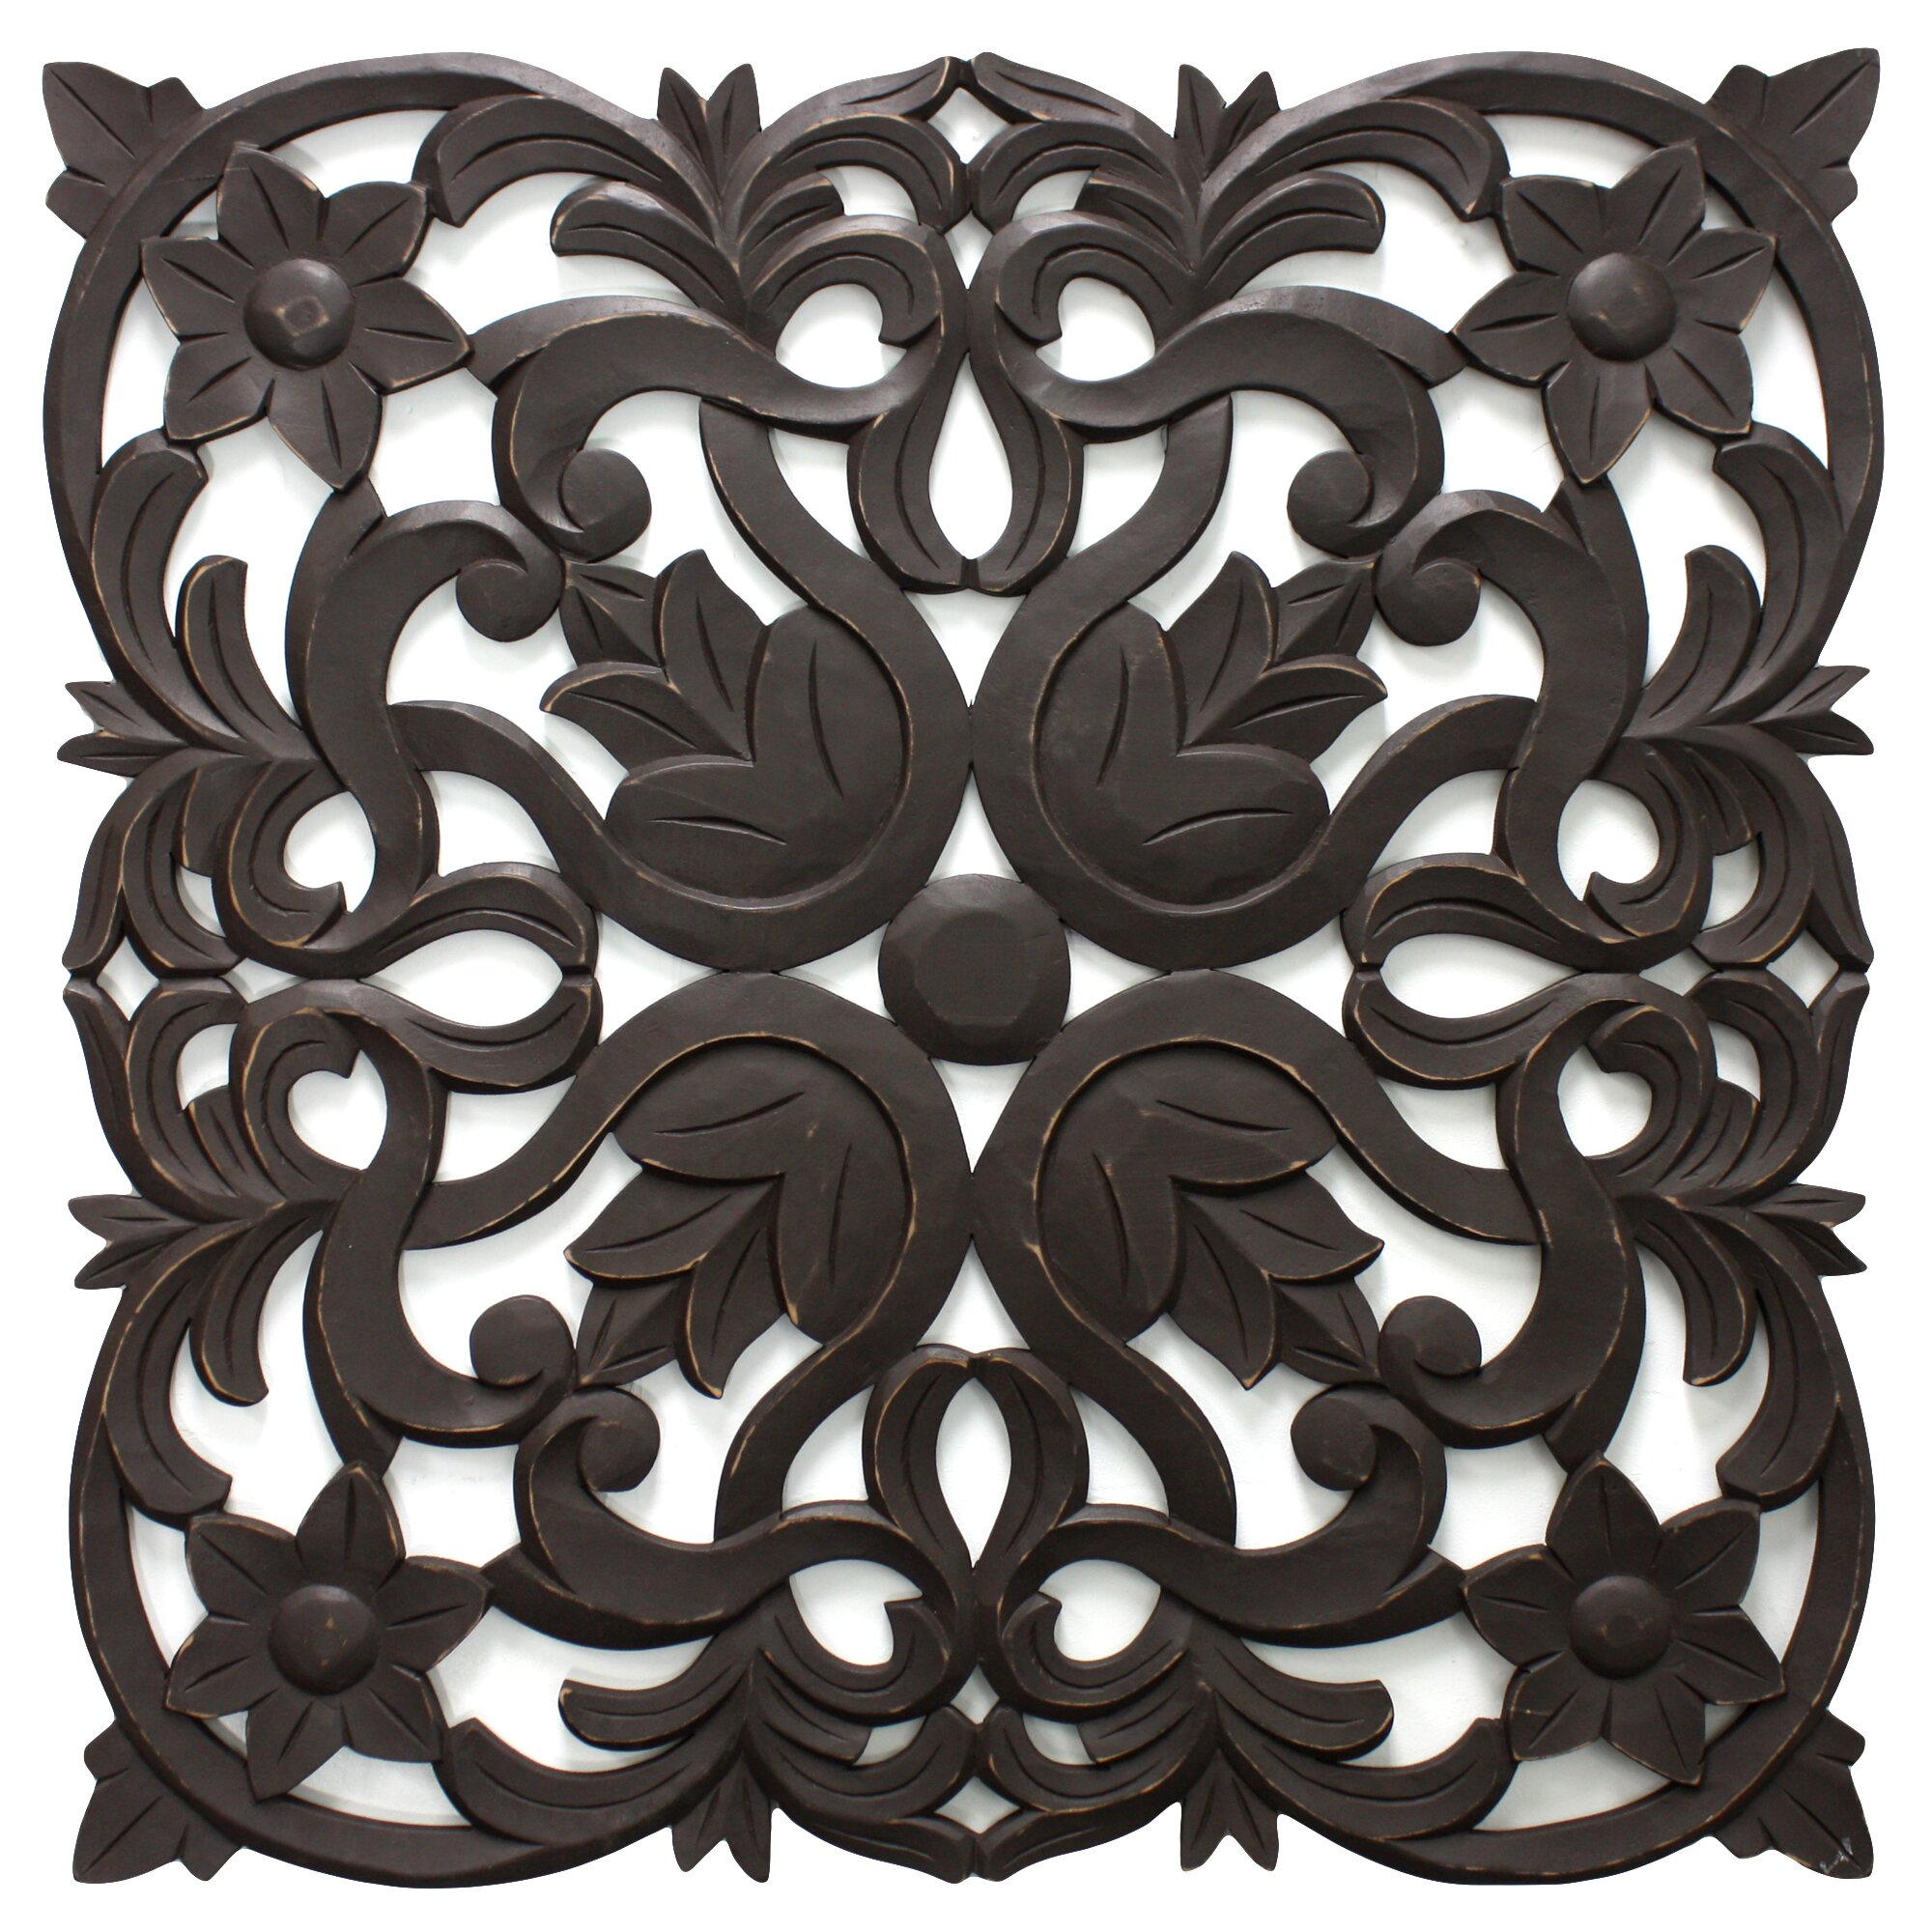 Fetco Home Decor Vaughn Medallion Wall Décor & Reviews